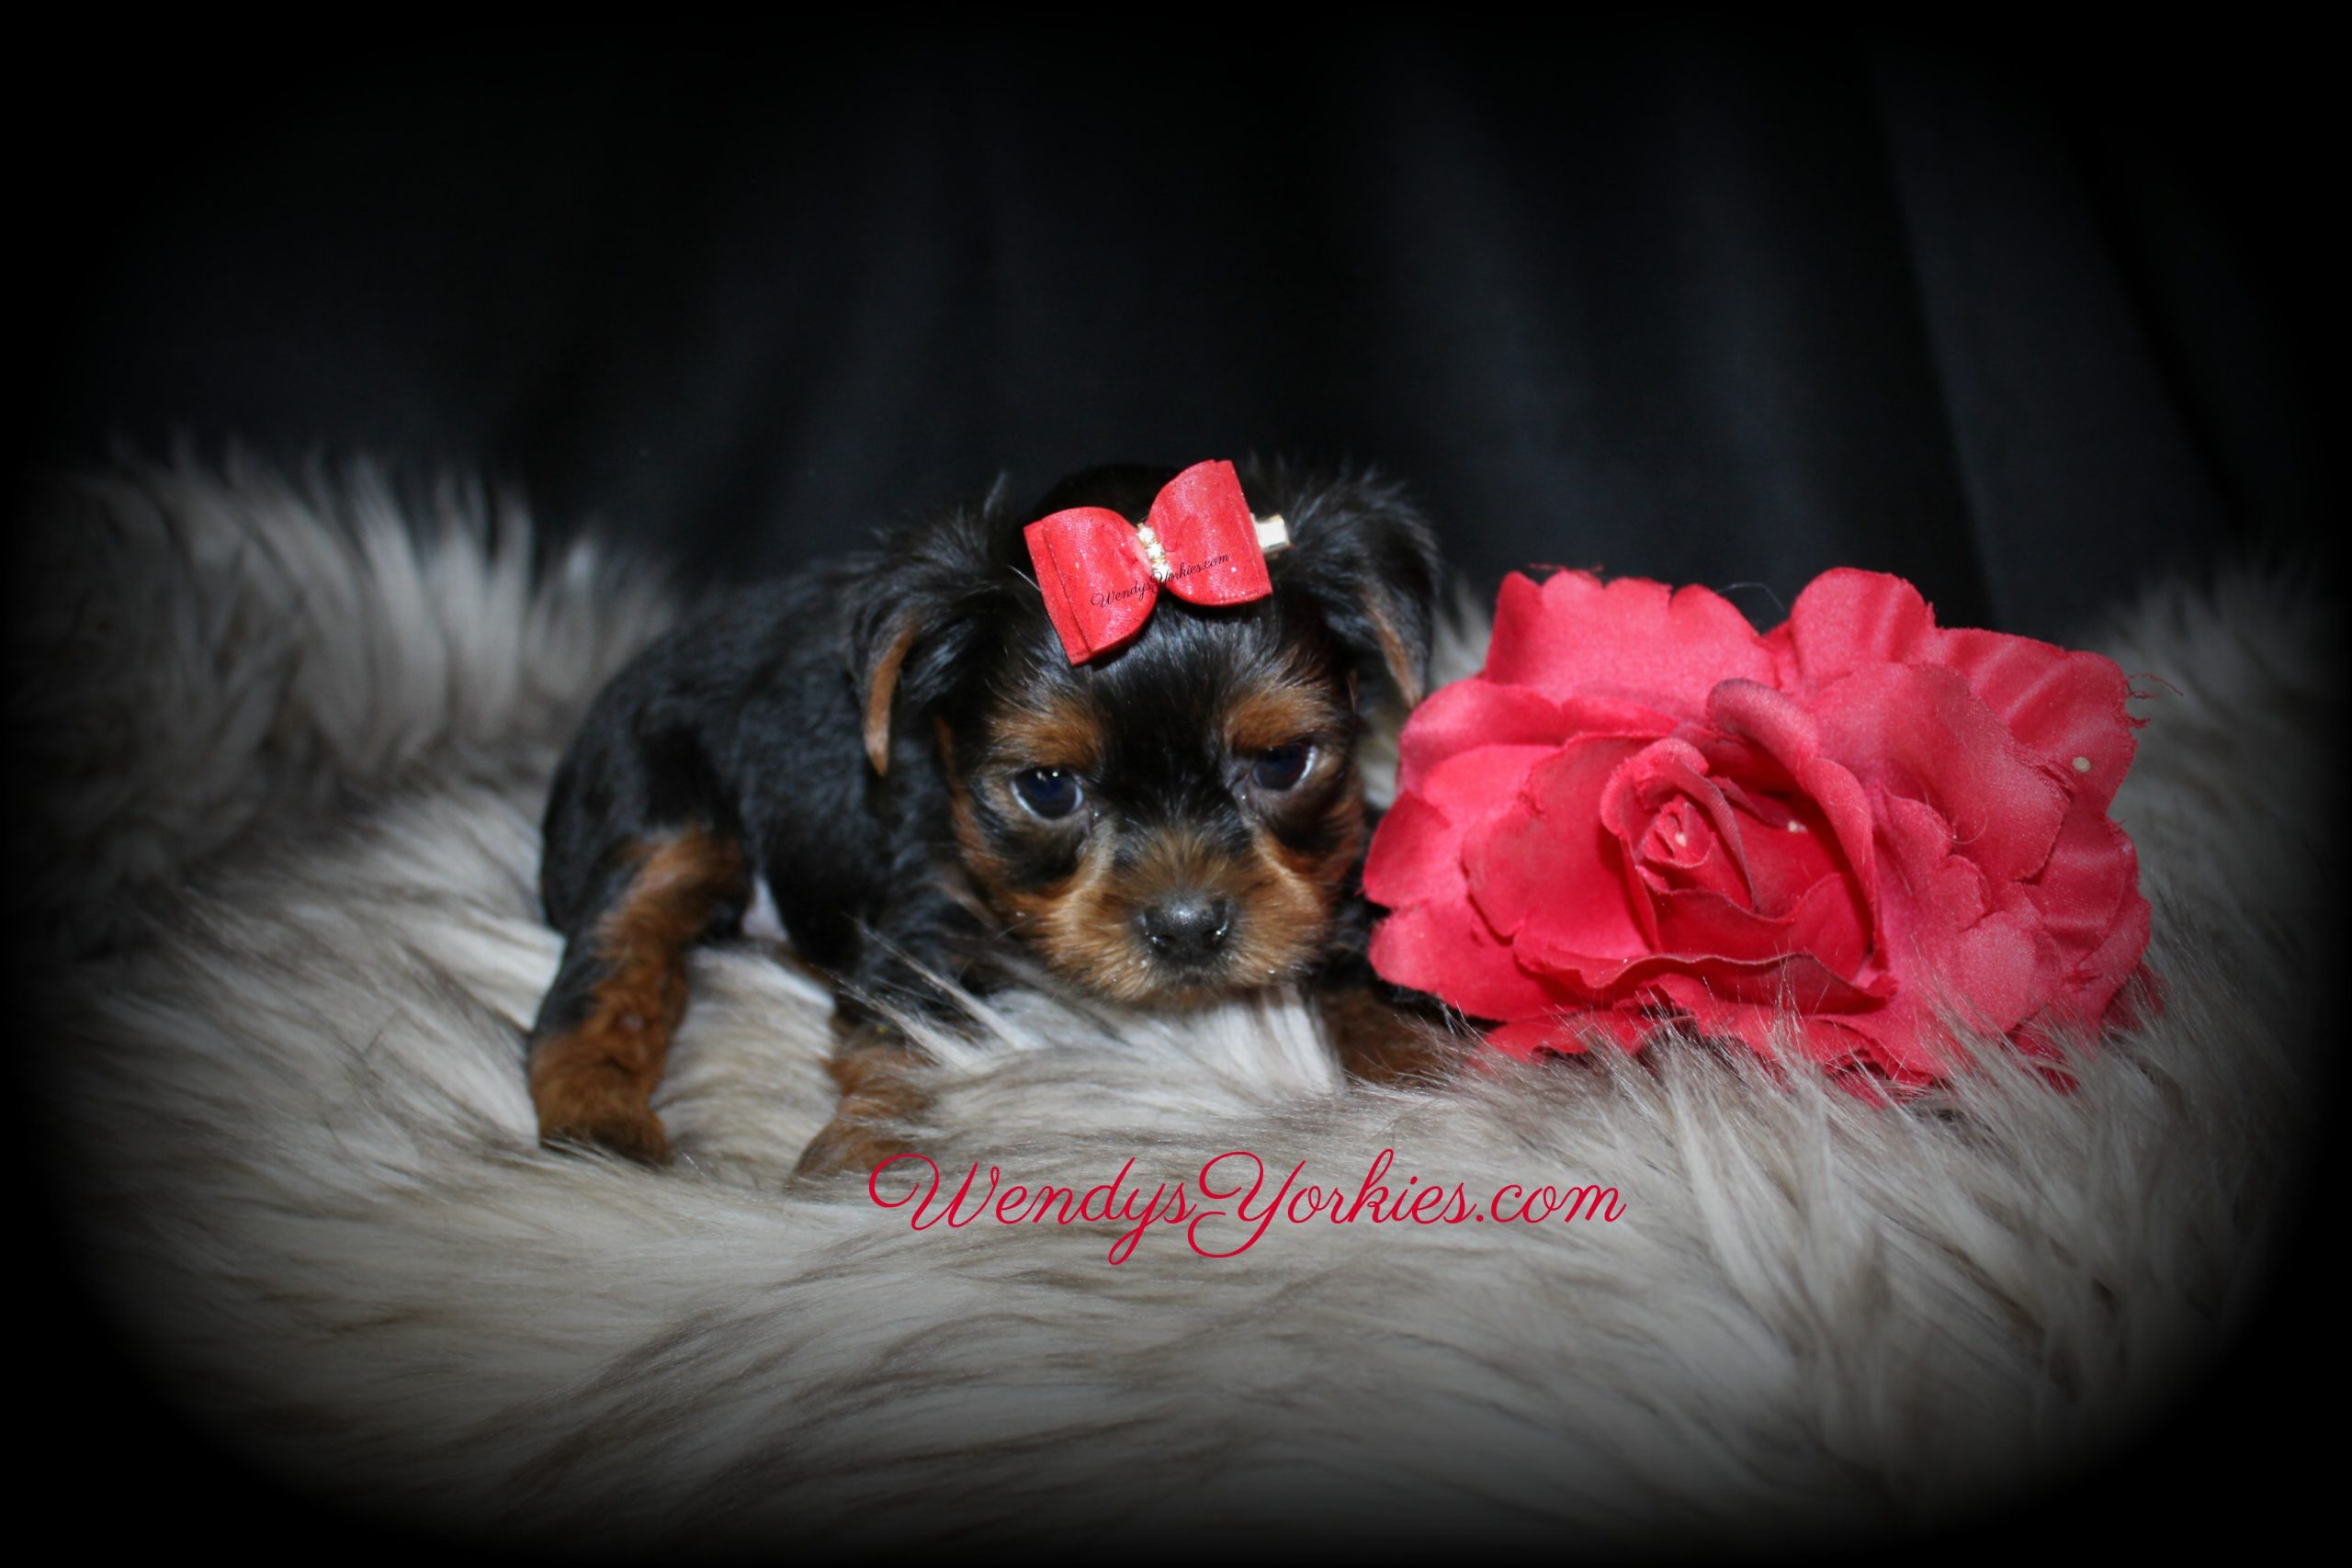 Cutest Yorkie puppy for sale in Texas, WendysYorkies.com